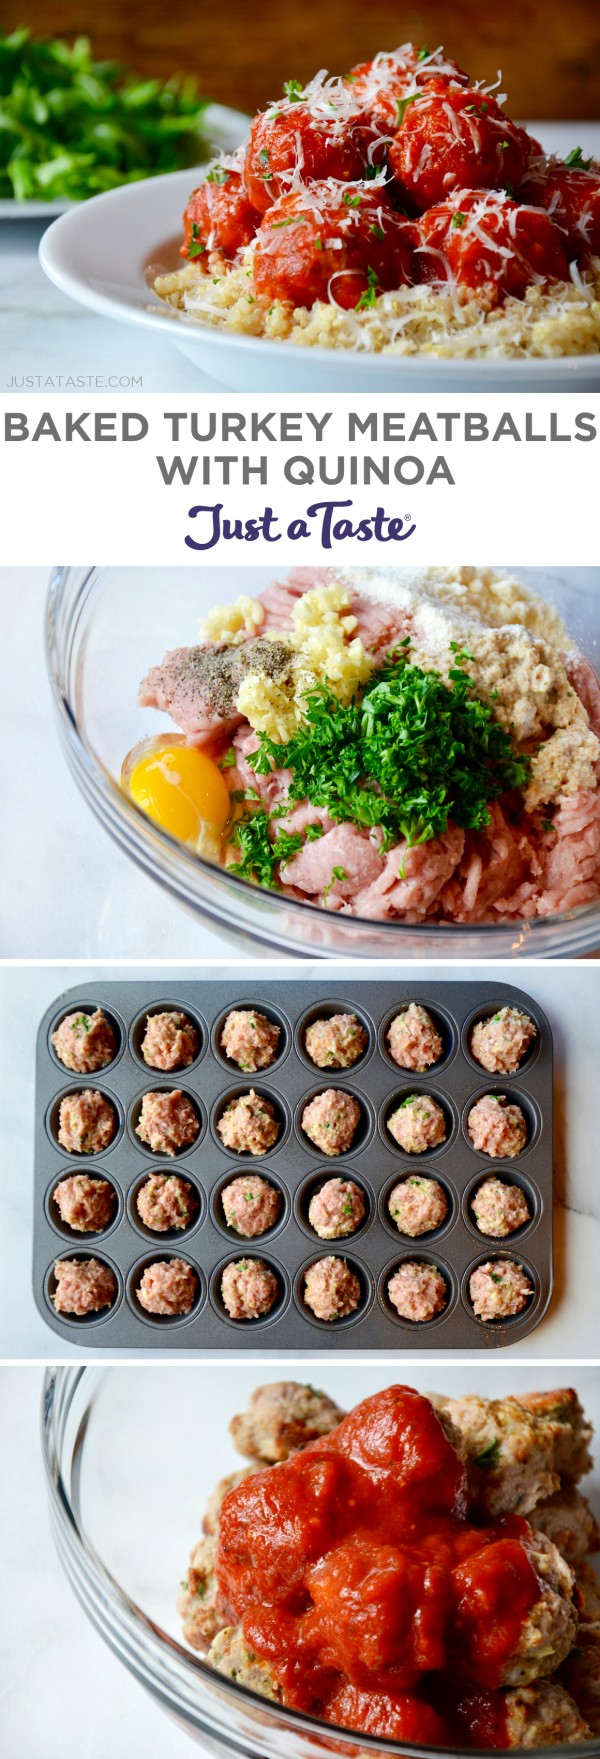 Get the recipe Baked Turkey Meatballs with Quinoa @recipes_to_go